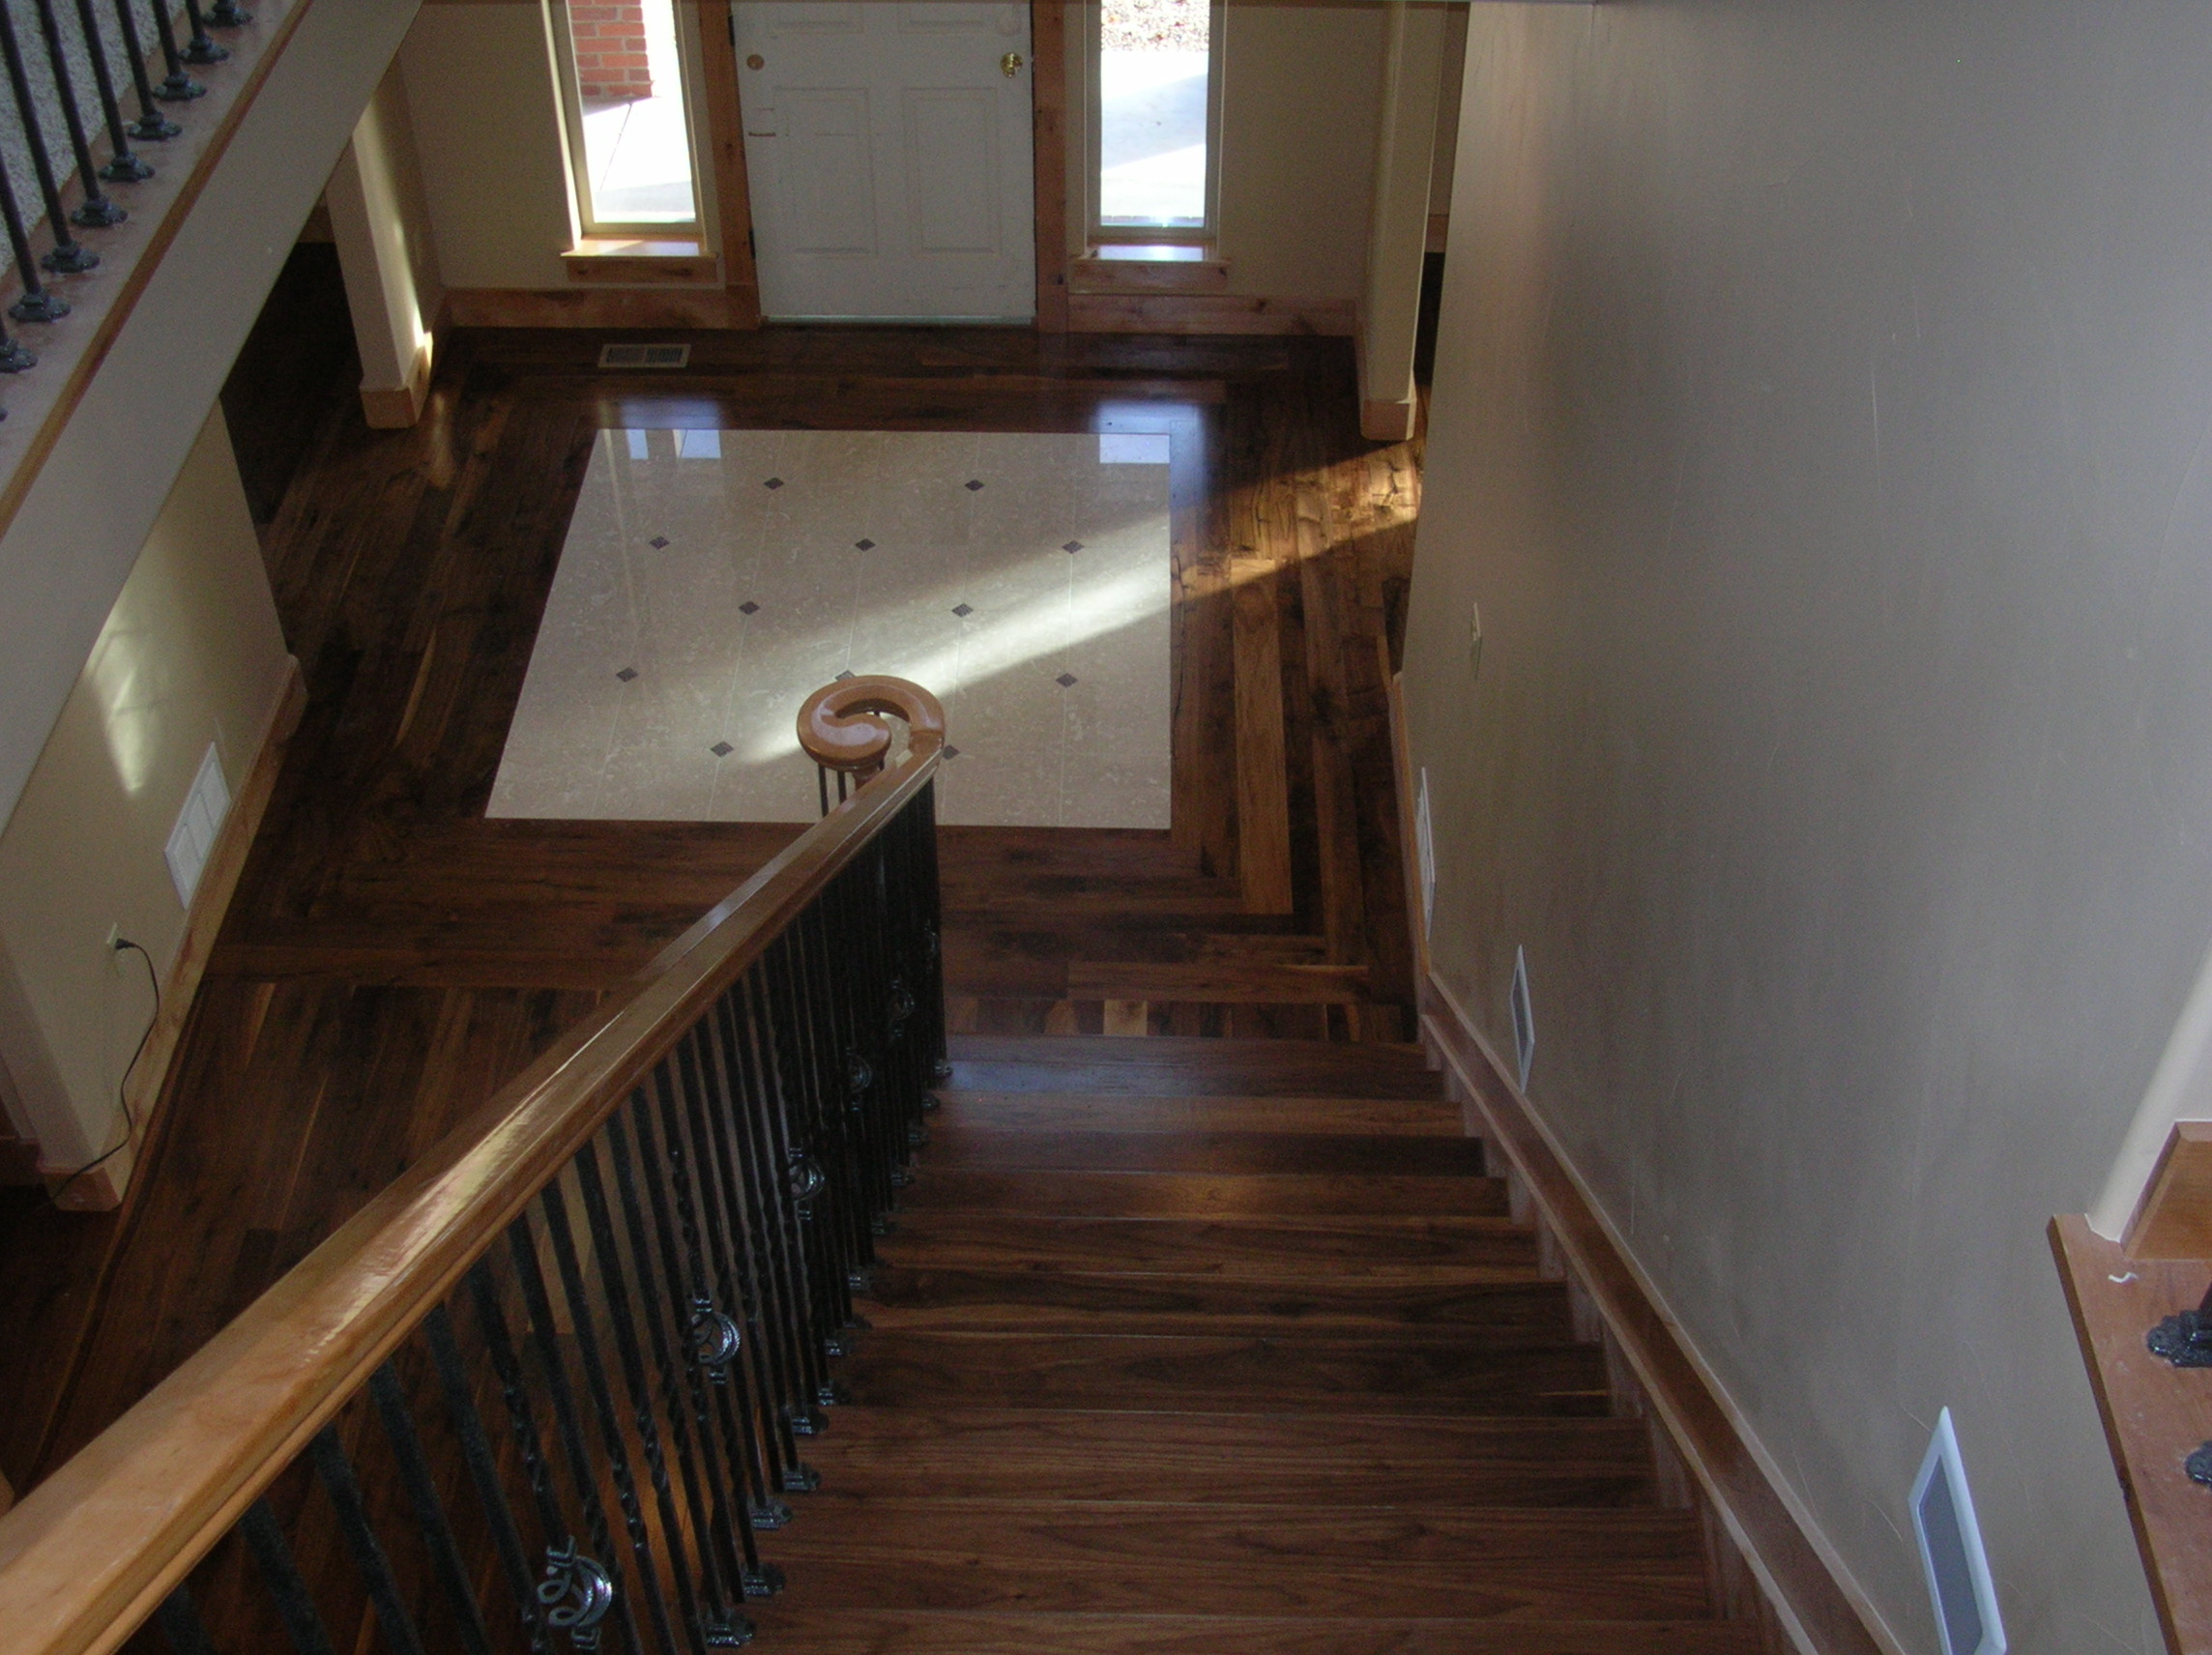 Kendall S Custom Wood Floors And Steps Inc Walnut Floors